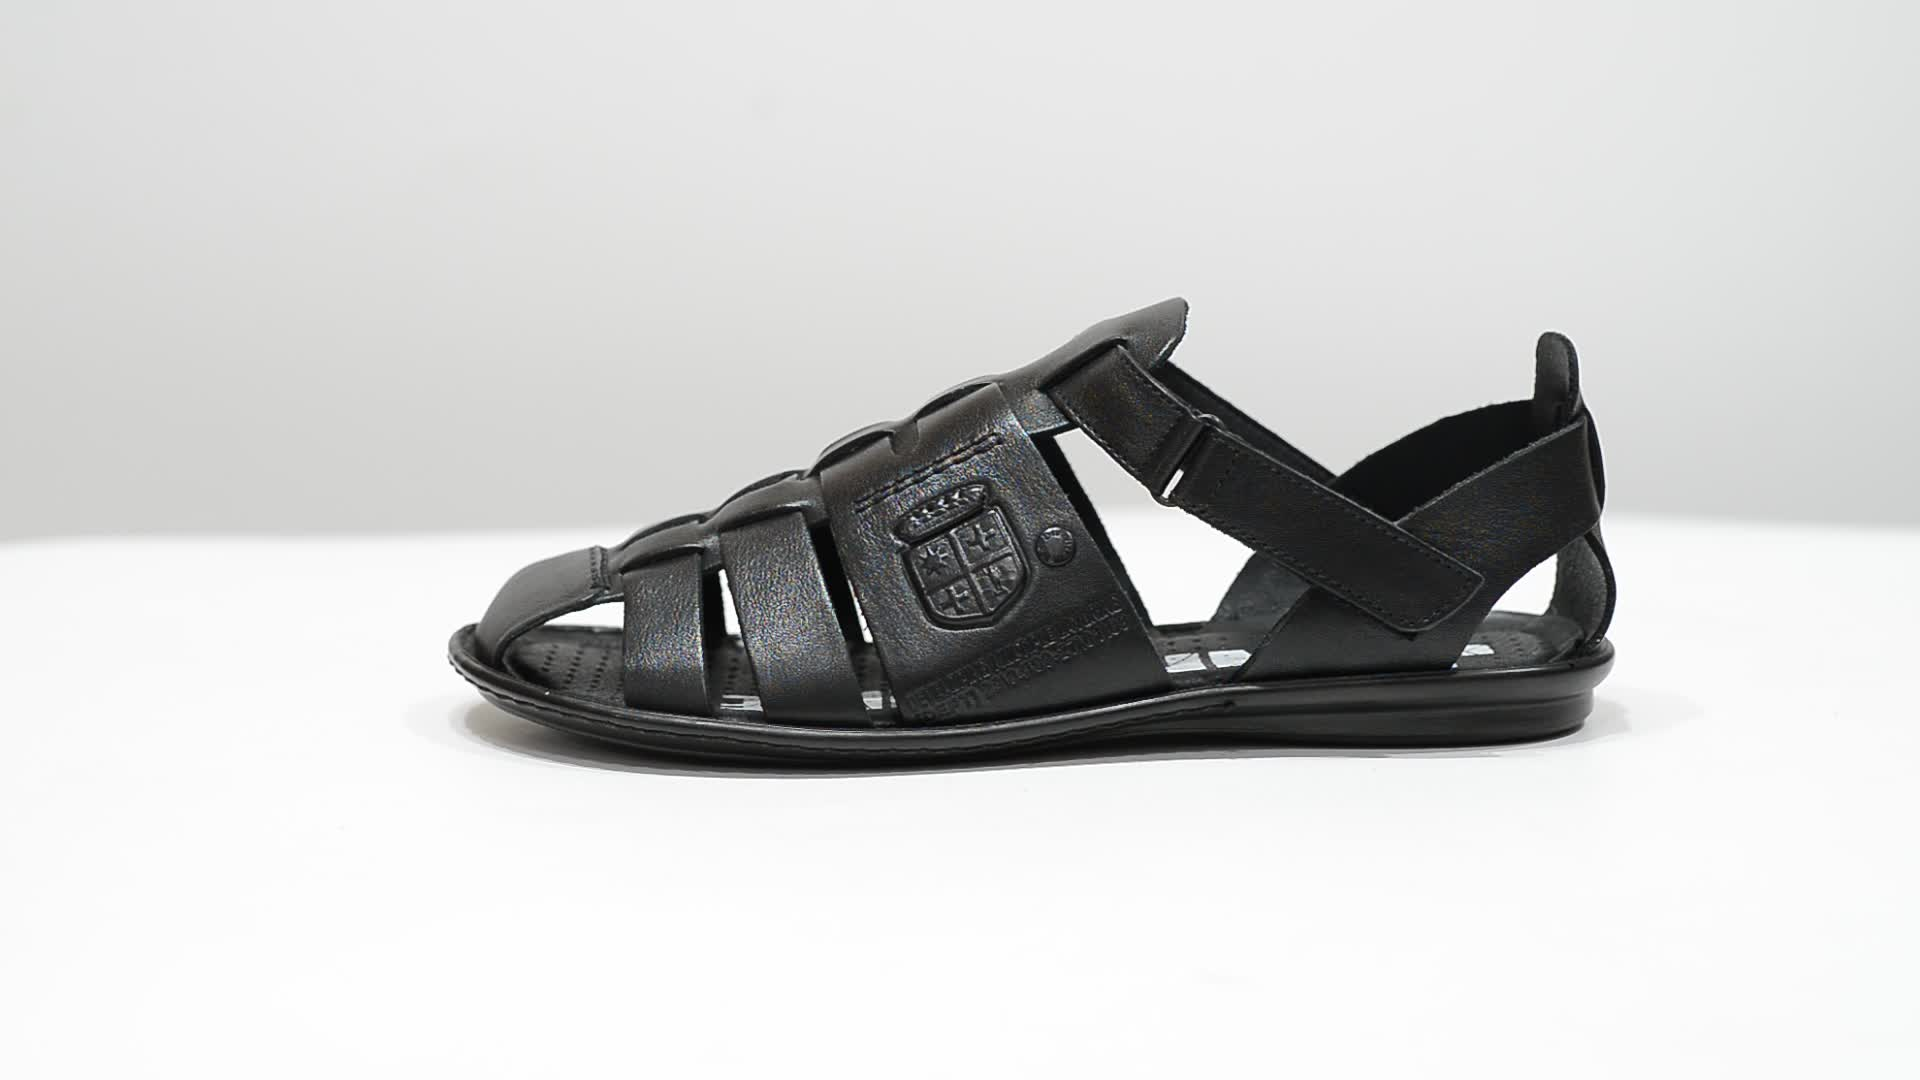 New Arrival Men Sandals, Sandal Wholesale, L665chp